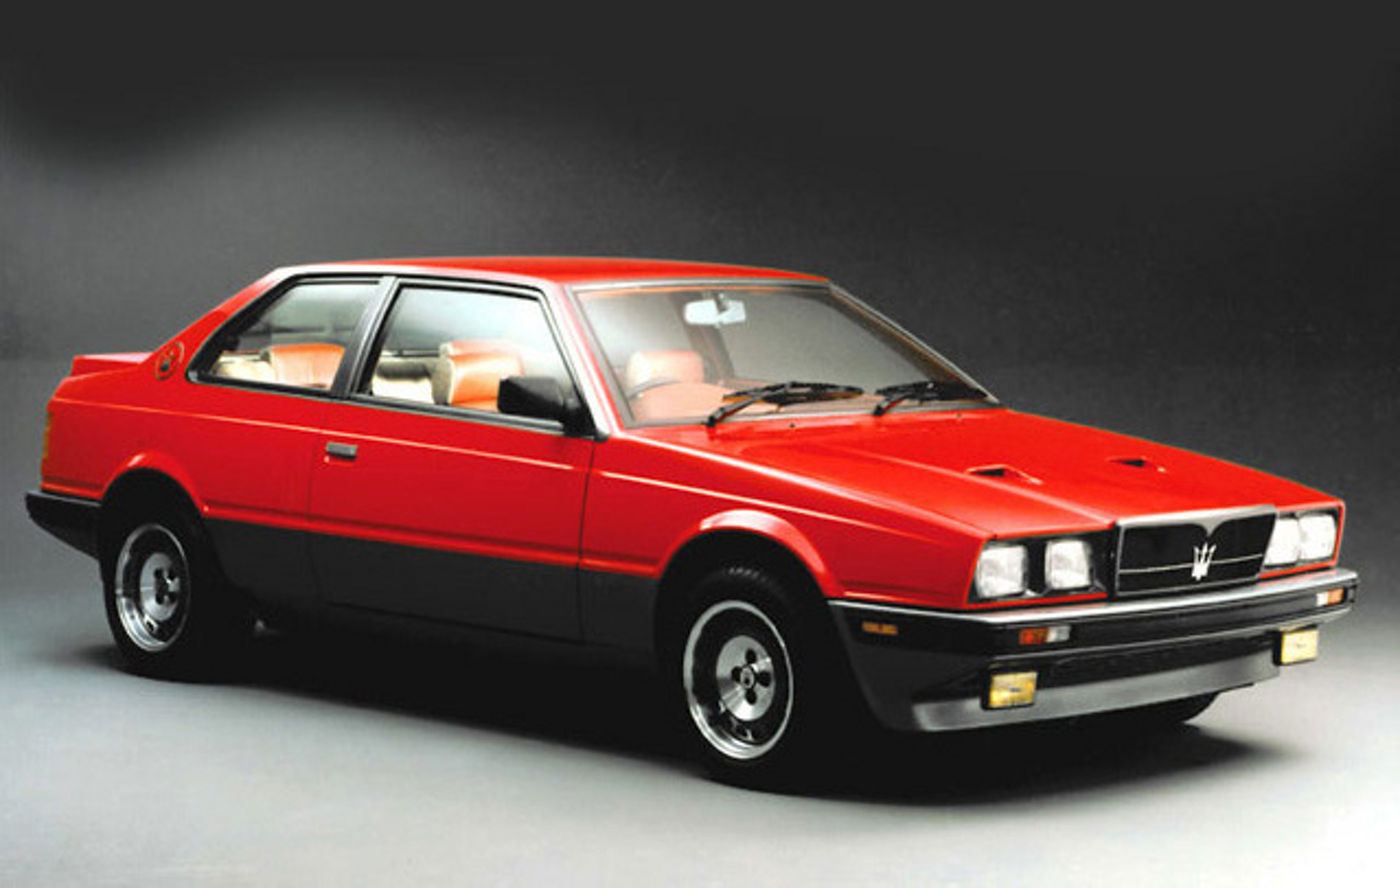 1983 Maserati Biturbo Export -  2.5-liter version of the classic car